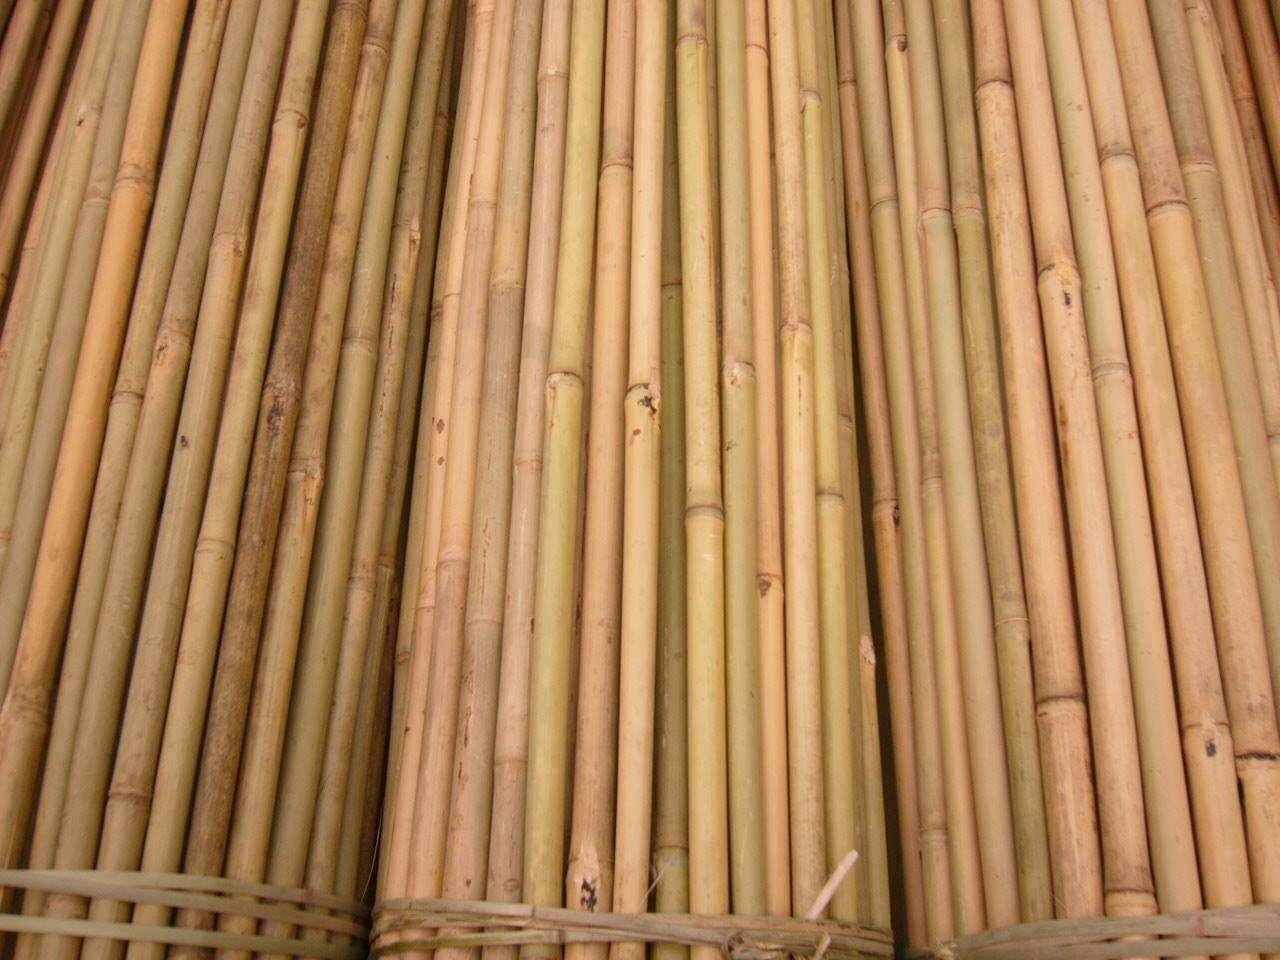 Bamboo poles canes stakes sticks tonkin manufacturer